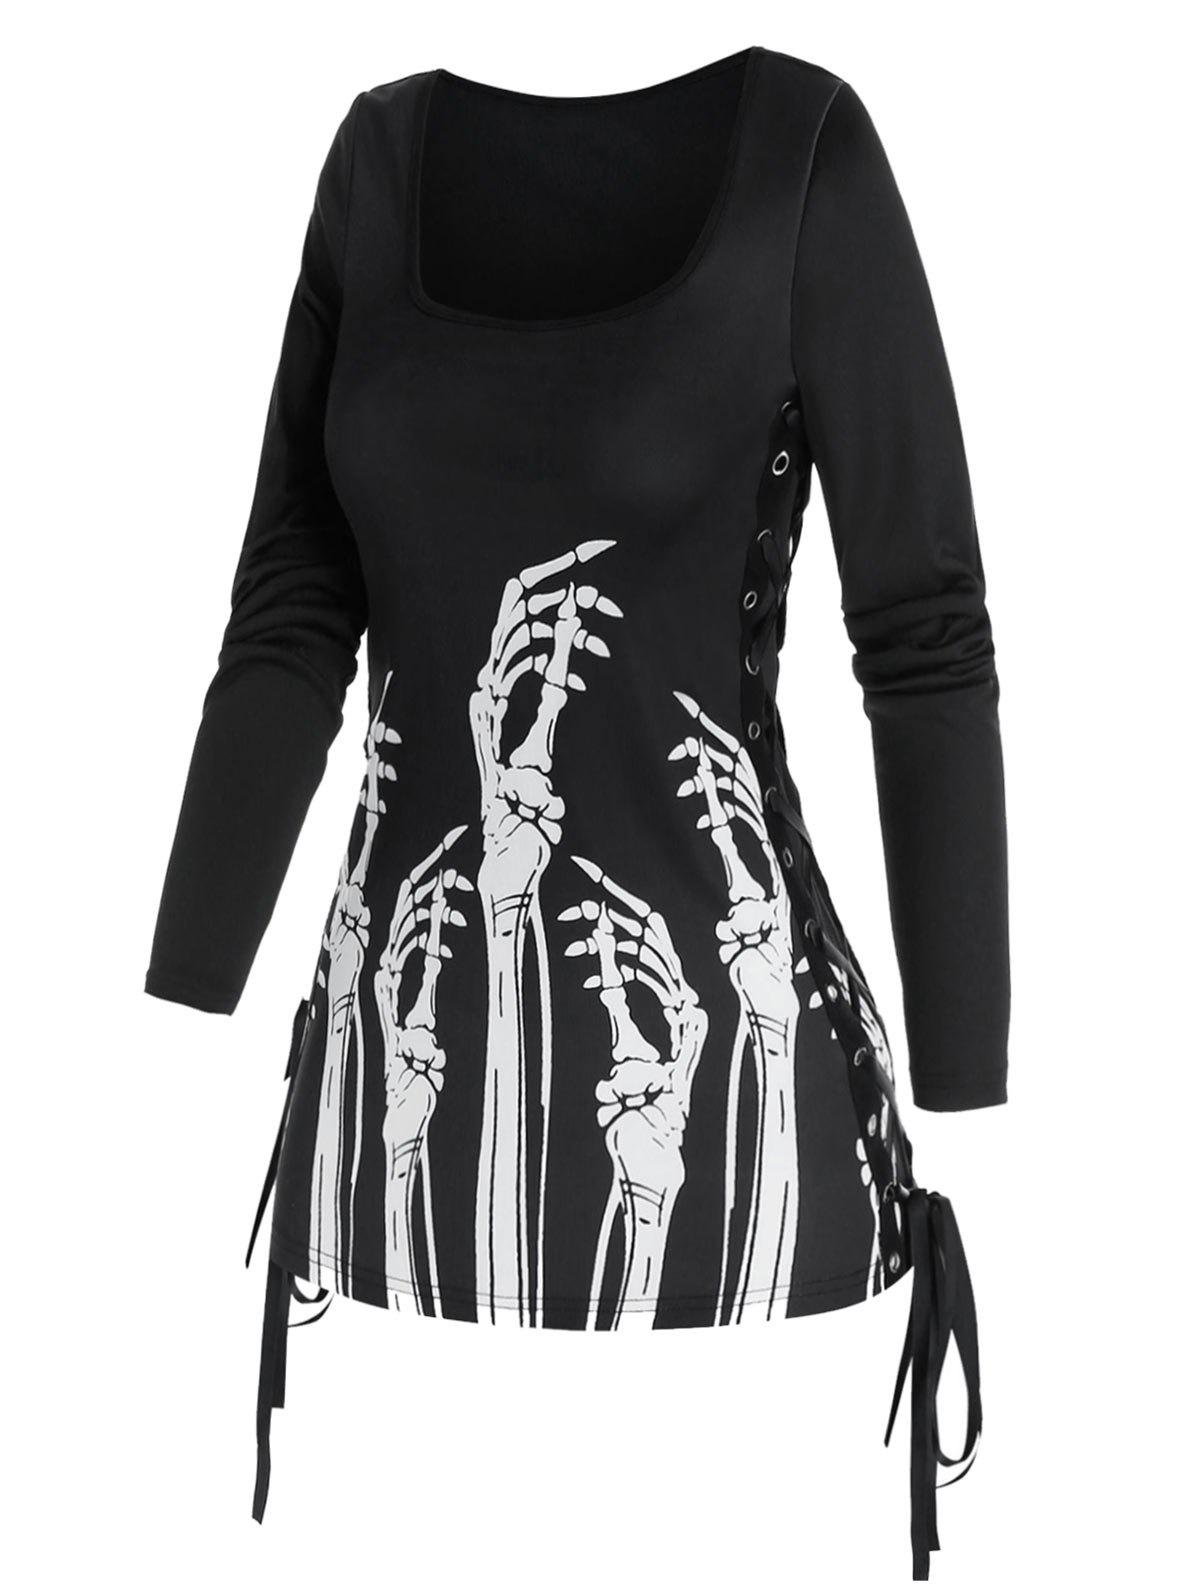 Fashion Gothic Skeleton Hands Print Side Lace Up T Shirt